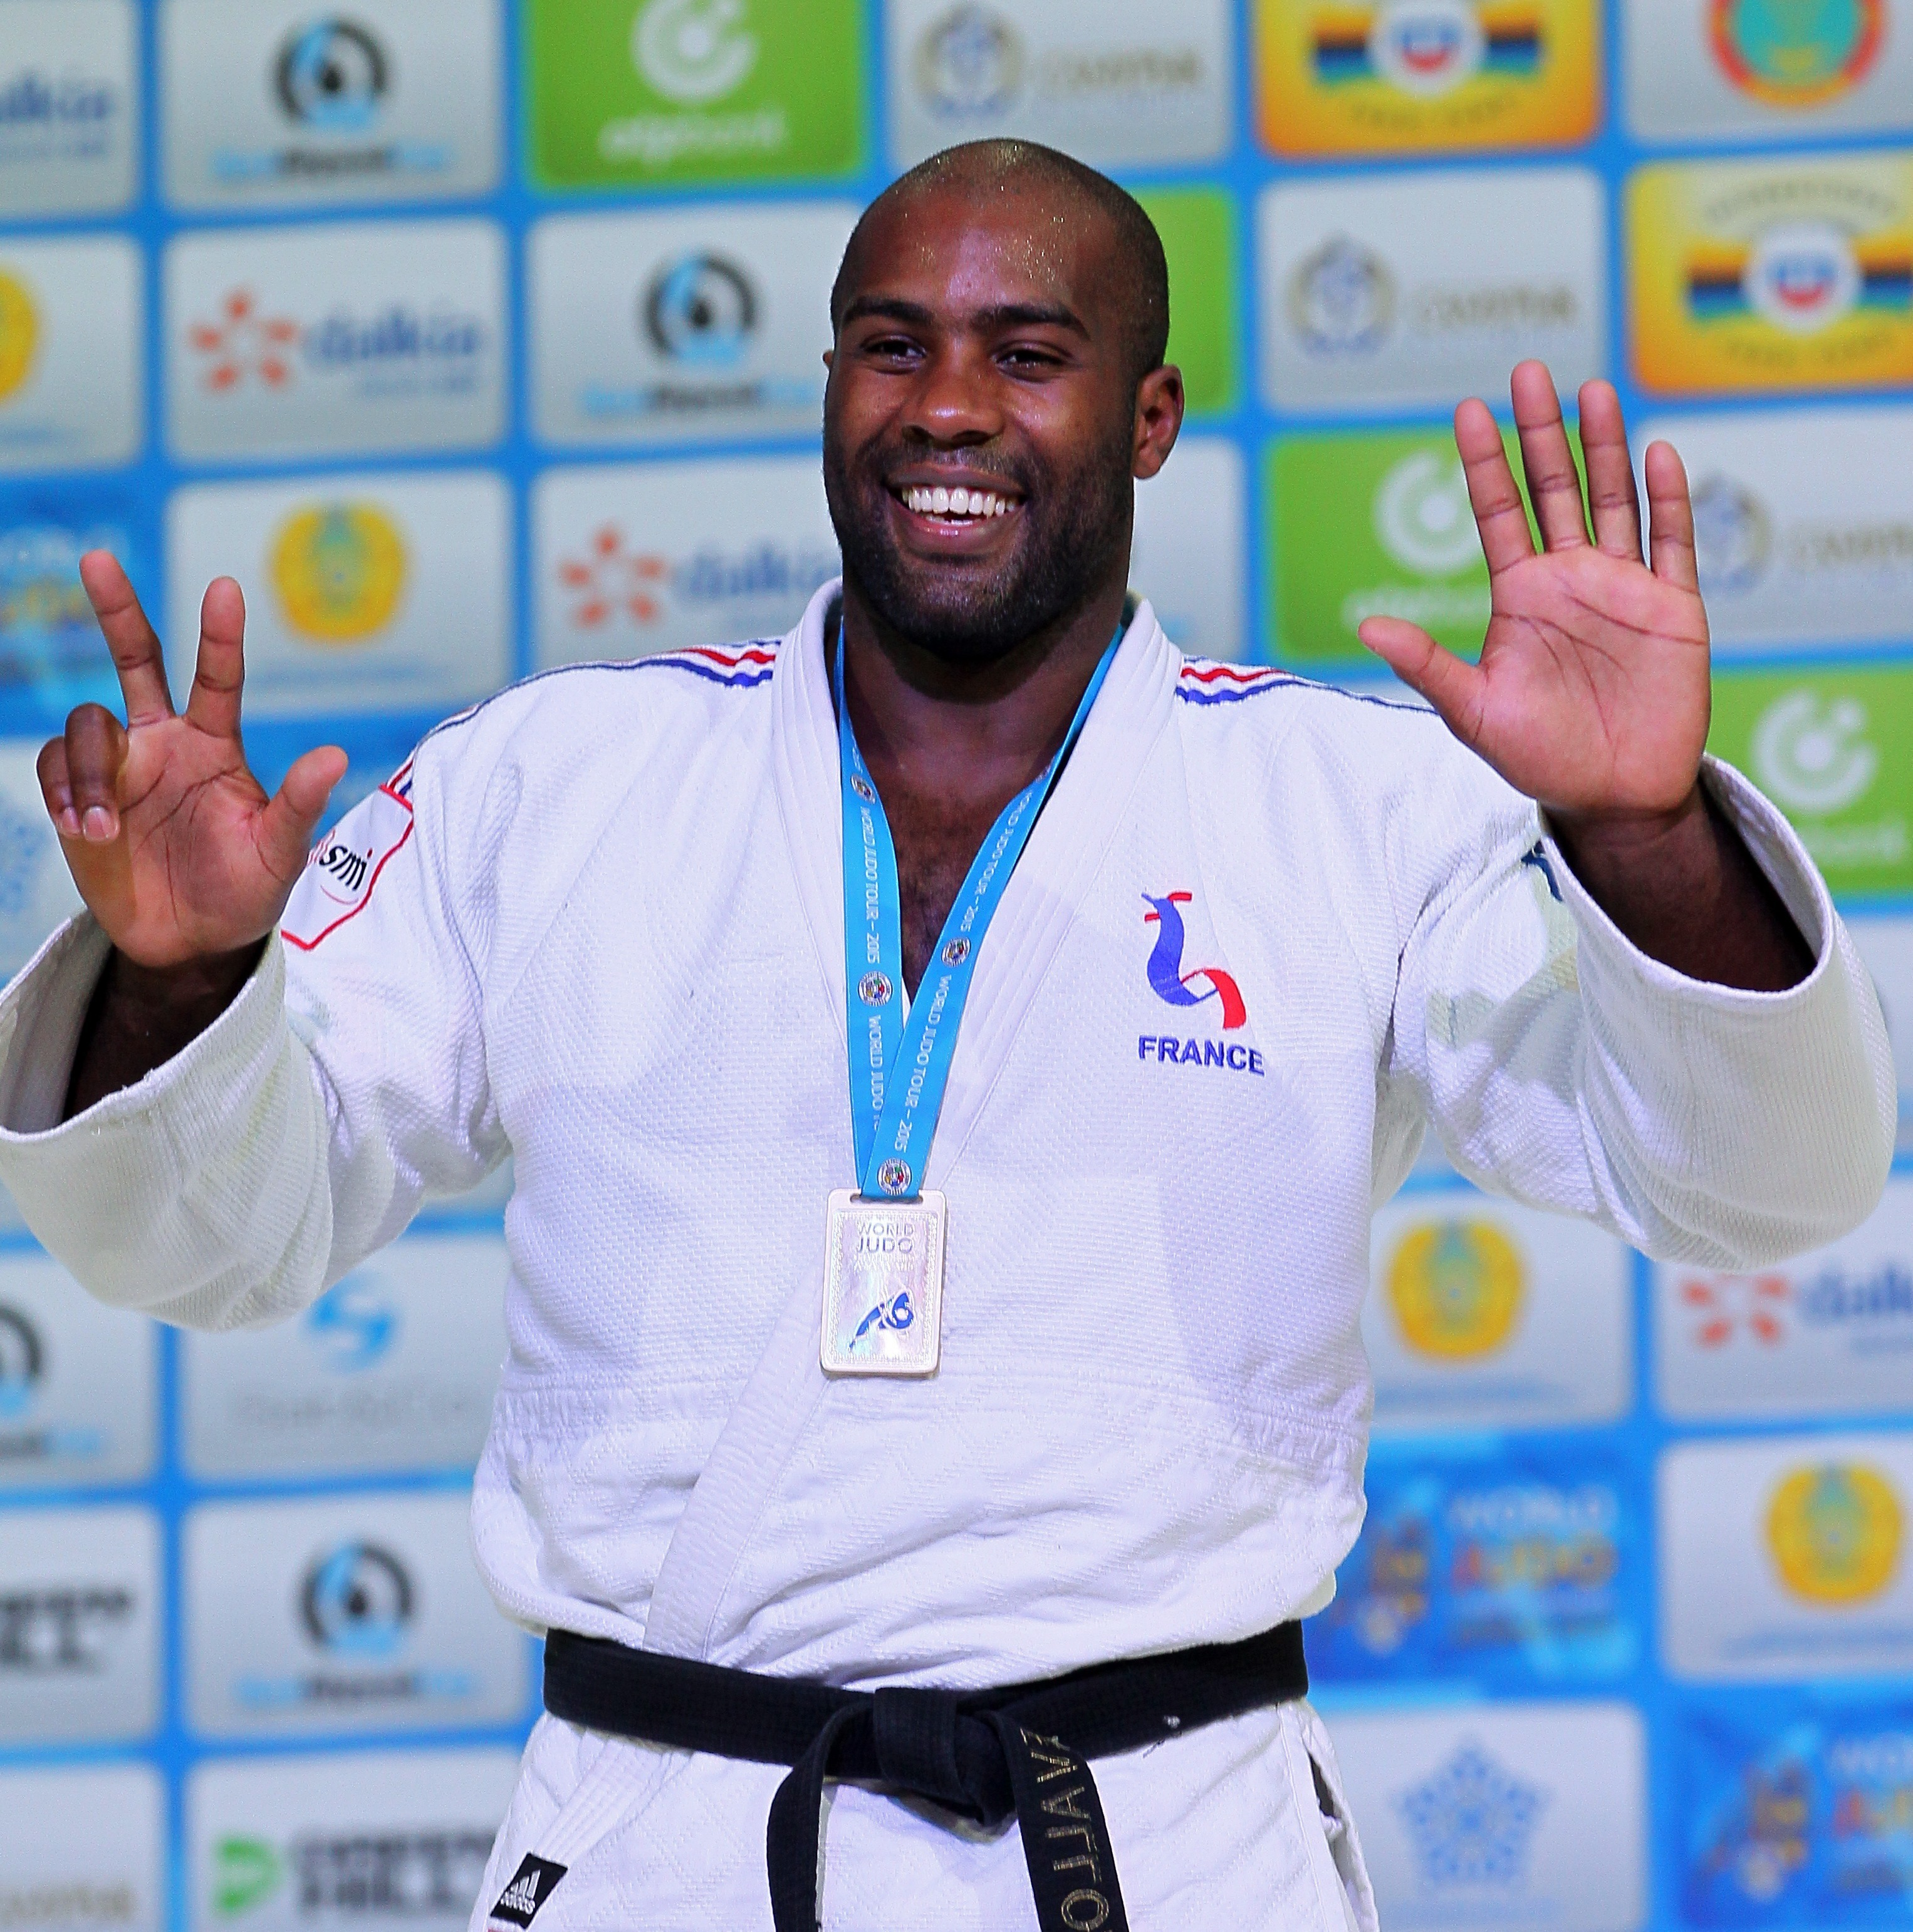 FILE - In this Aug. 29, 2015, file photo, France's Teddy Riner poses during an award ceremony of the men's +100 kg final at the World Judo Championships in Astana, Kazakhstan. The 27-year-old heavyweight has won a record eight world championship titles, f